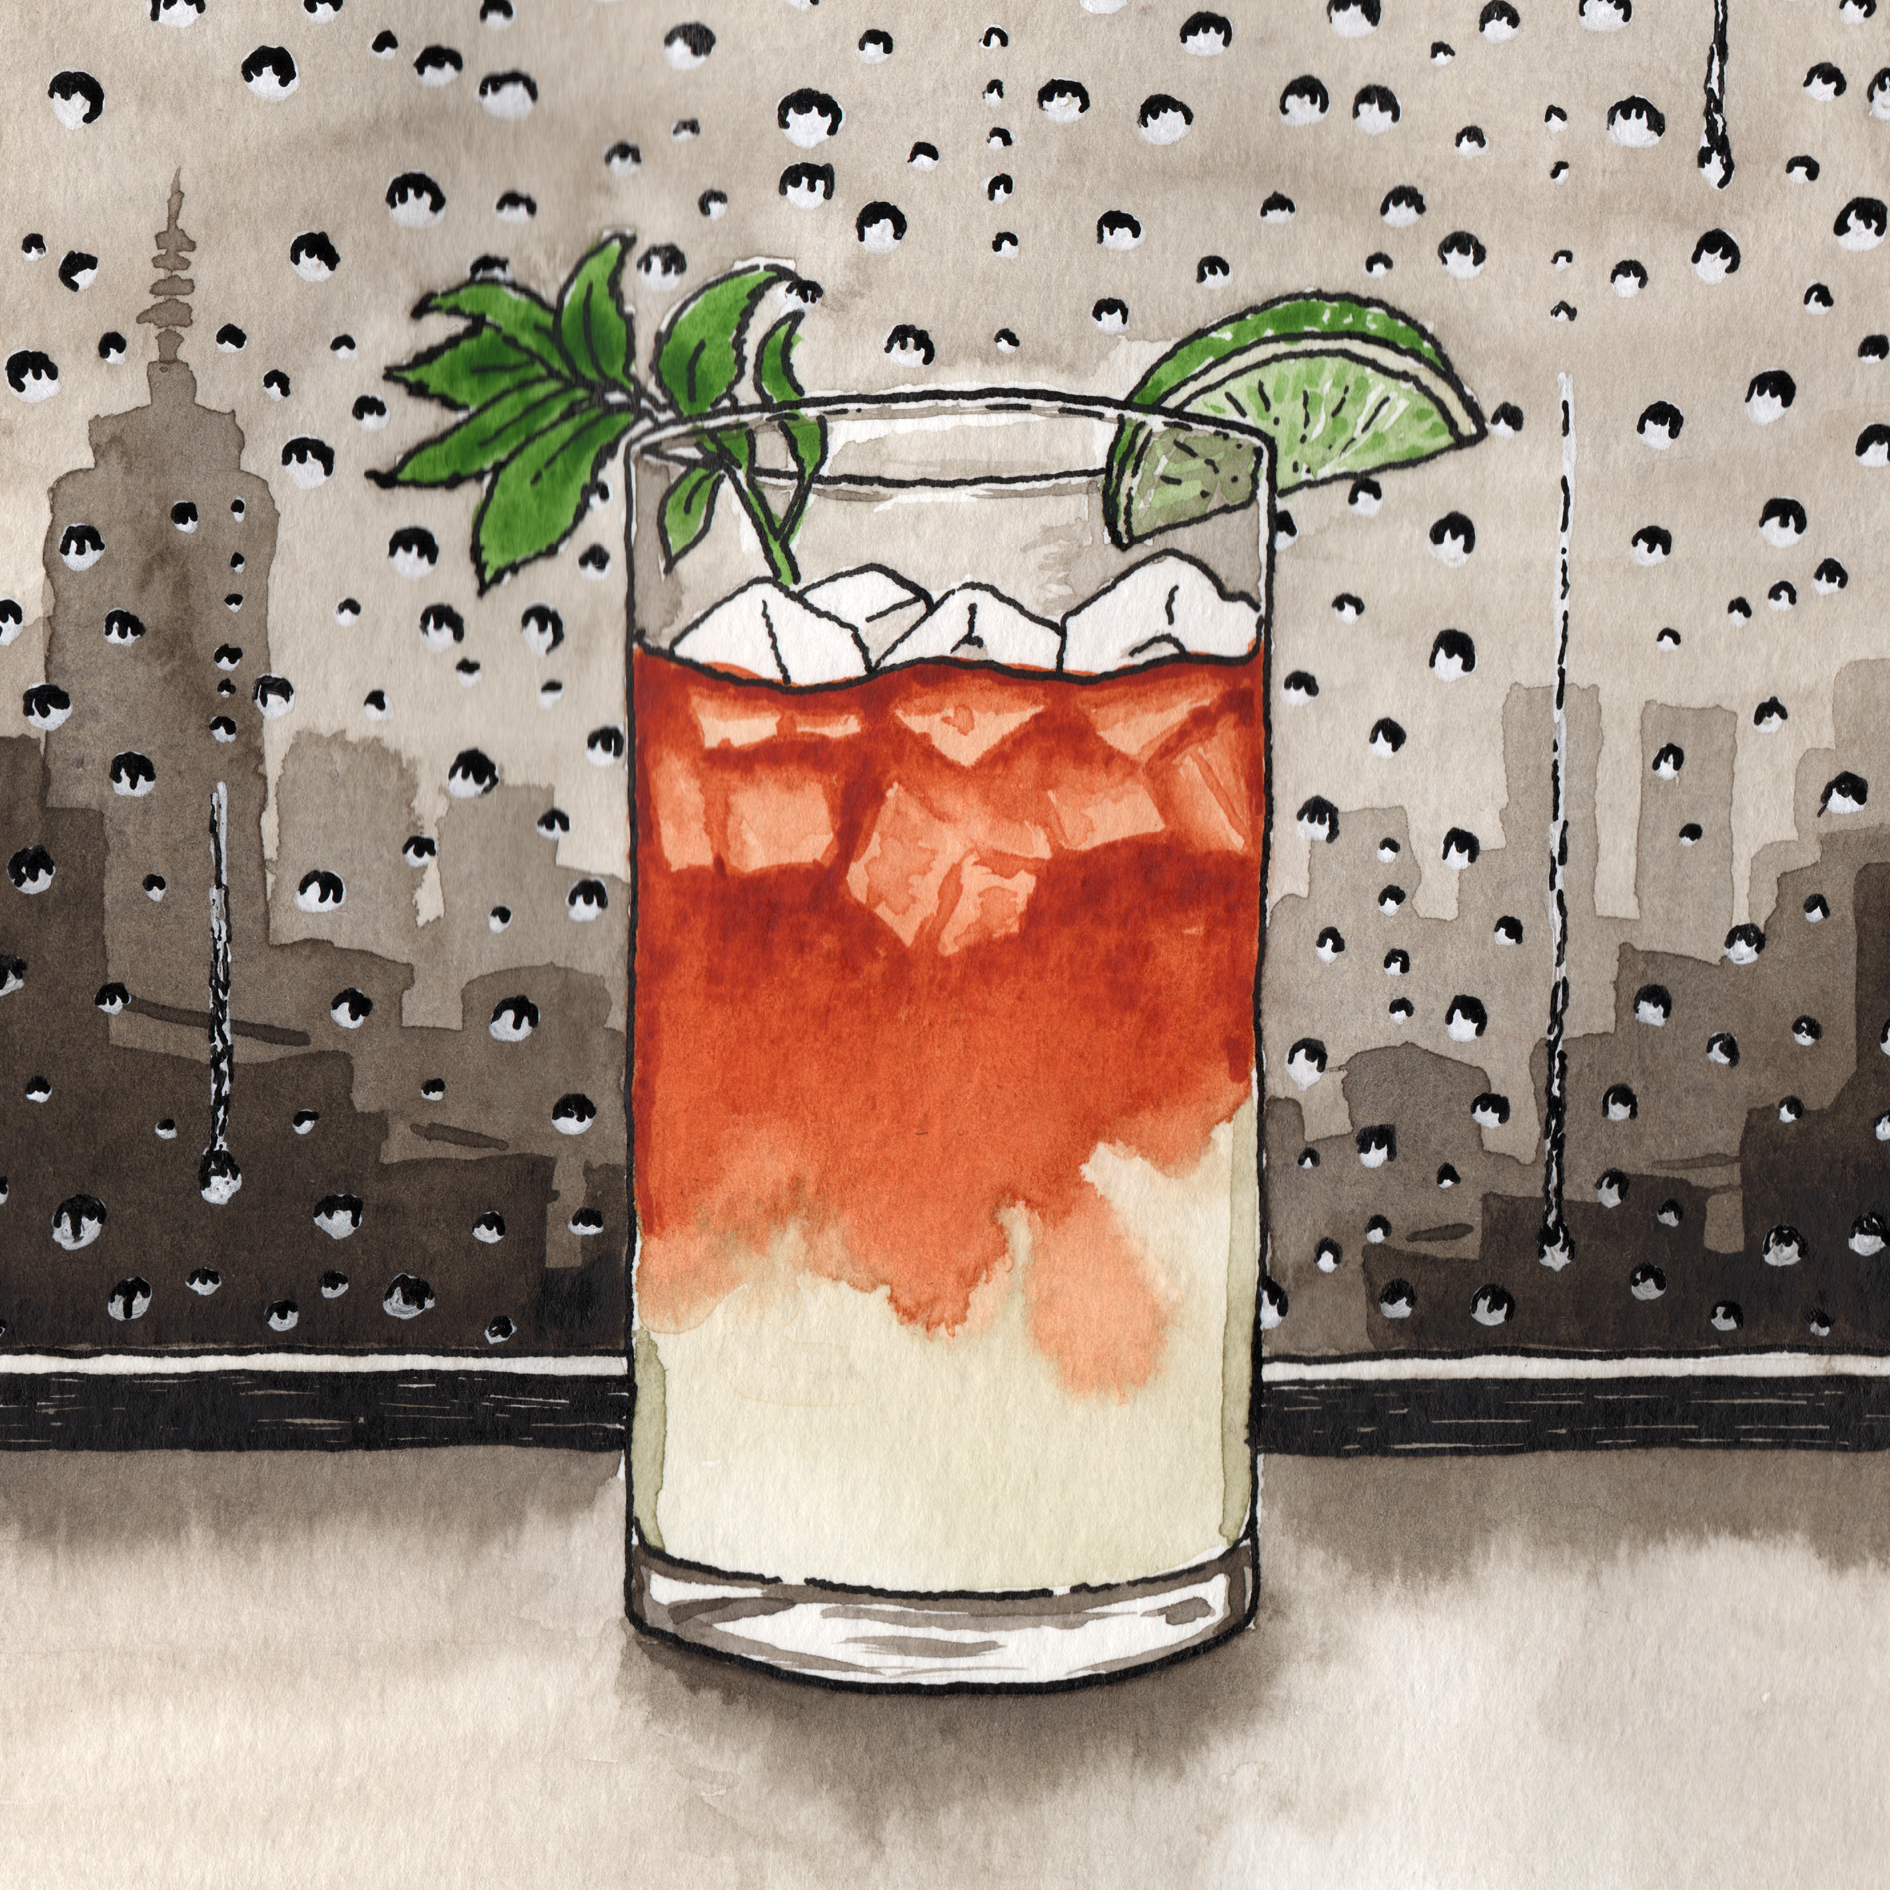 """Despite the Dark & Stormy having its roots in post WWI Bahamas, I can't get away from the idea of a dark and stormy sky, this time expressed through a sodden city seen through a rain soaked lofty bar window. The drink brings all the warmth to the picture (and the drinker)"""". Mick Clarke."""